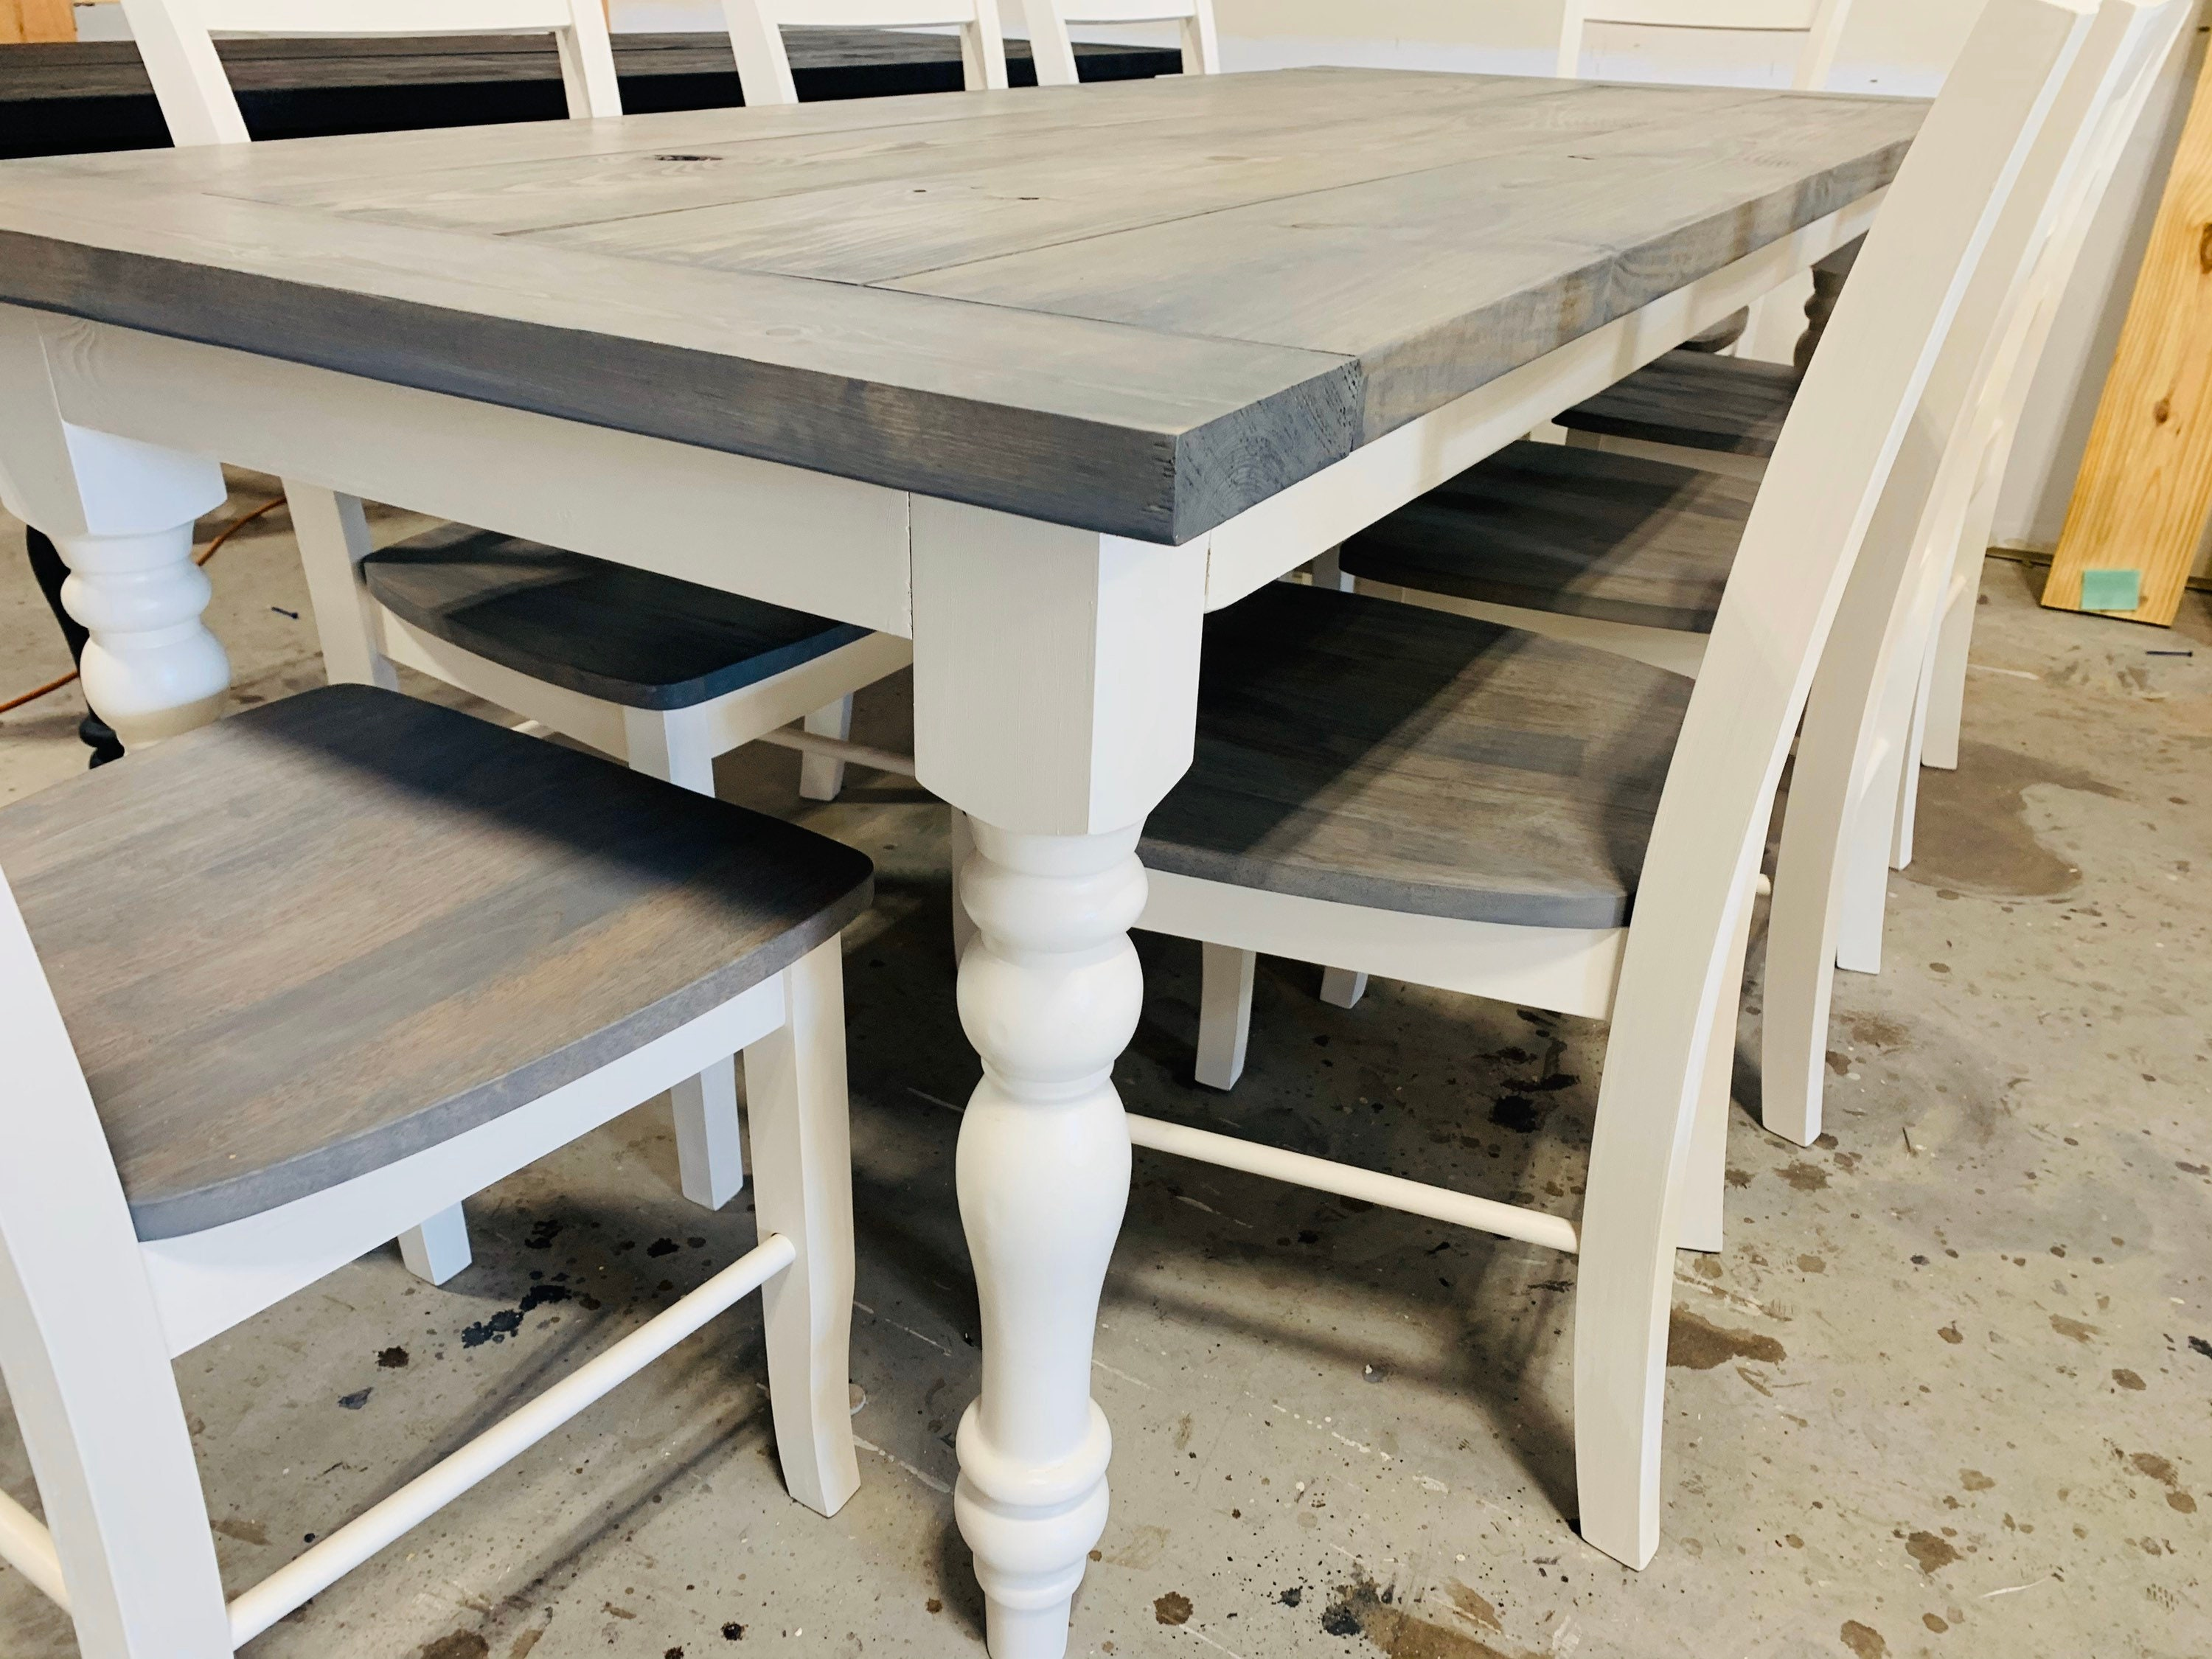 7ft Rustic Farmhouse Table With Turned Legs Chair Set Classic Gray Top And Antique White Base Wooden Dining Table